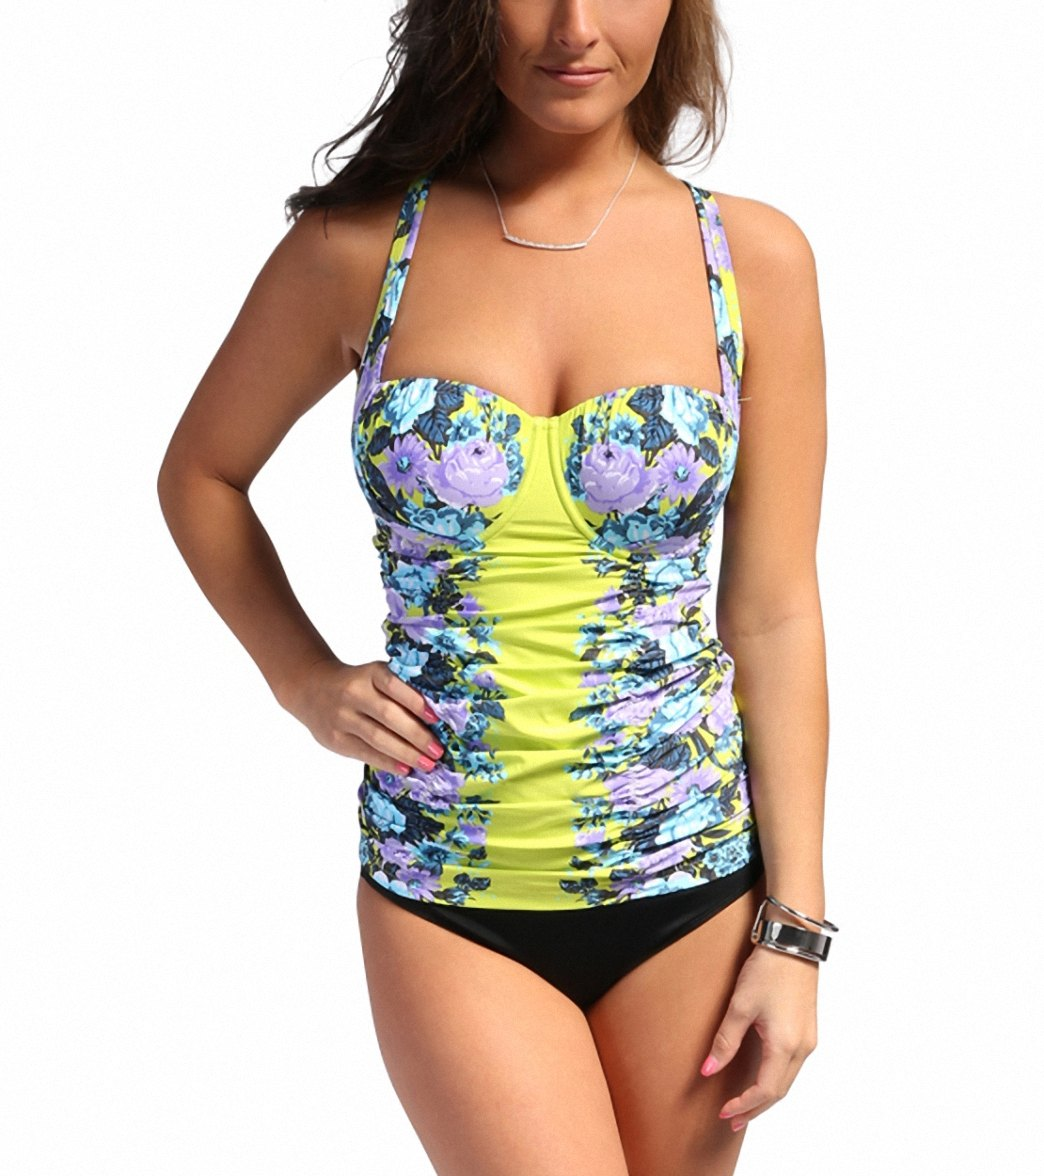 775b9851cd4ed Seafolly Bella Rose DD-Cup Balconette Tankini Top at SwimOutlet ...